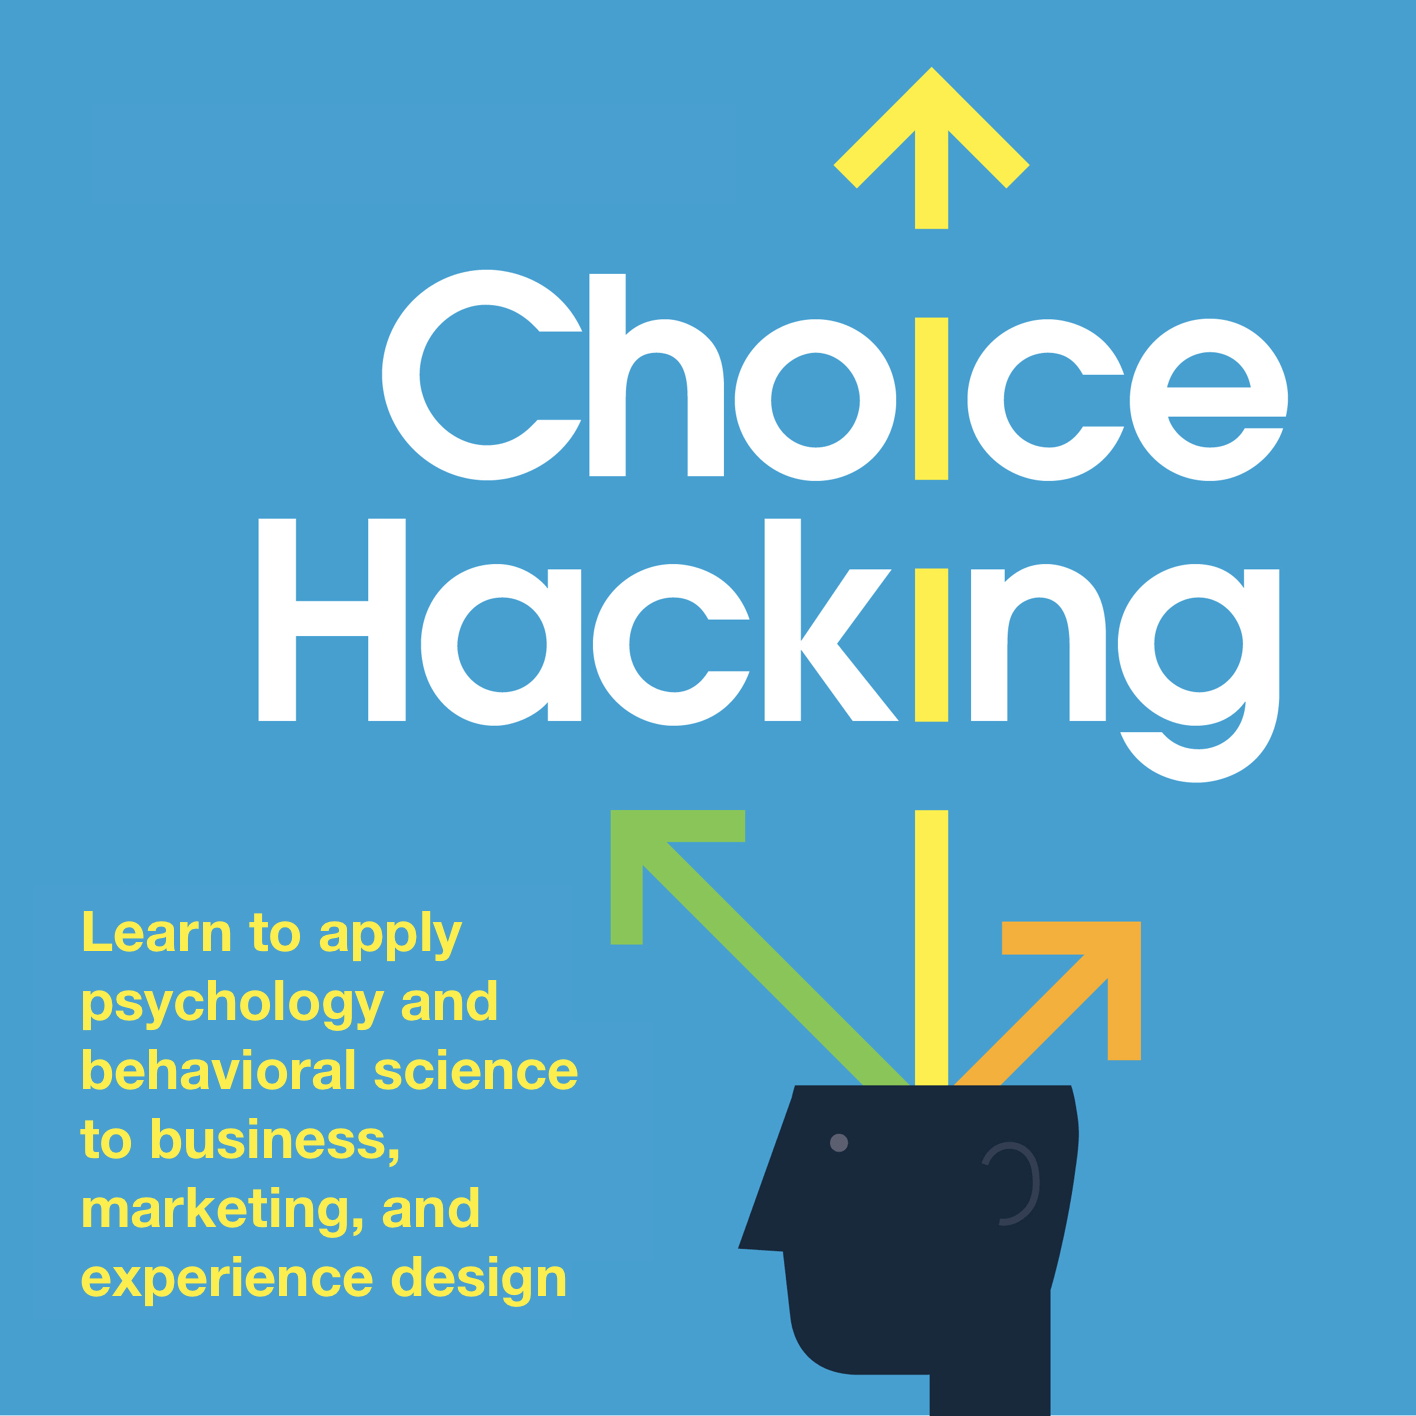 Choice Hacking Behavioral Science Podcast